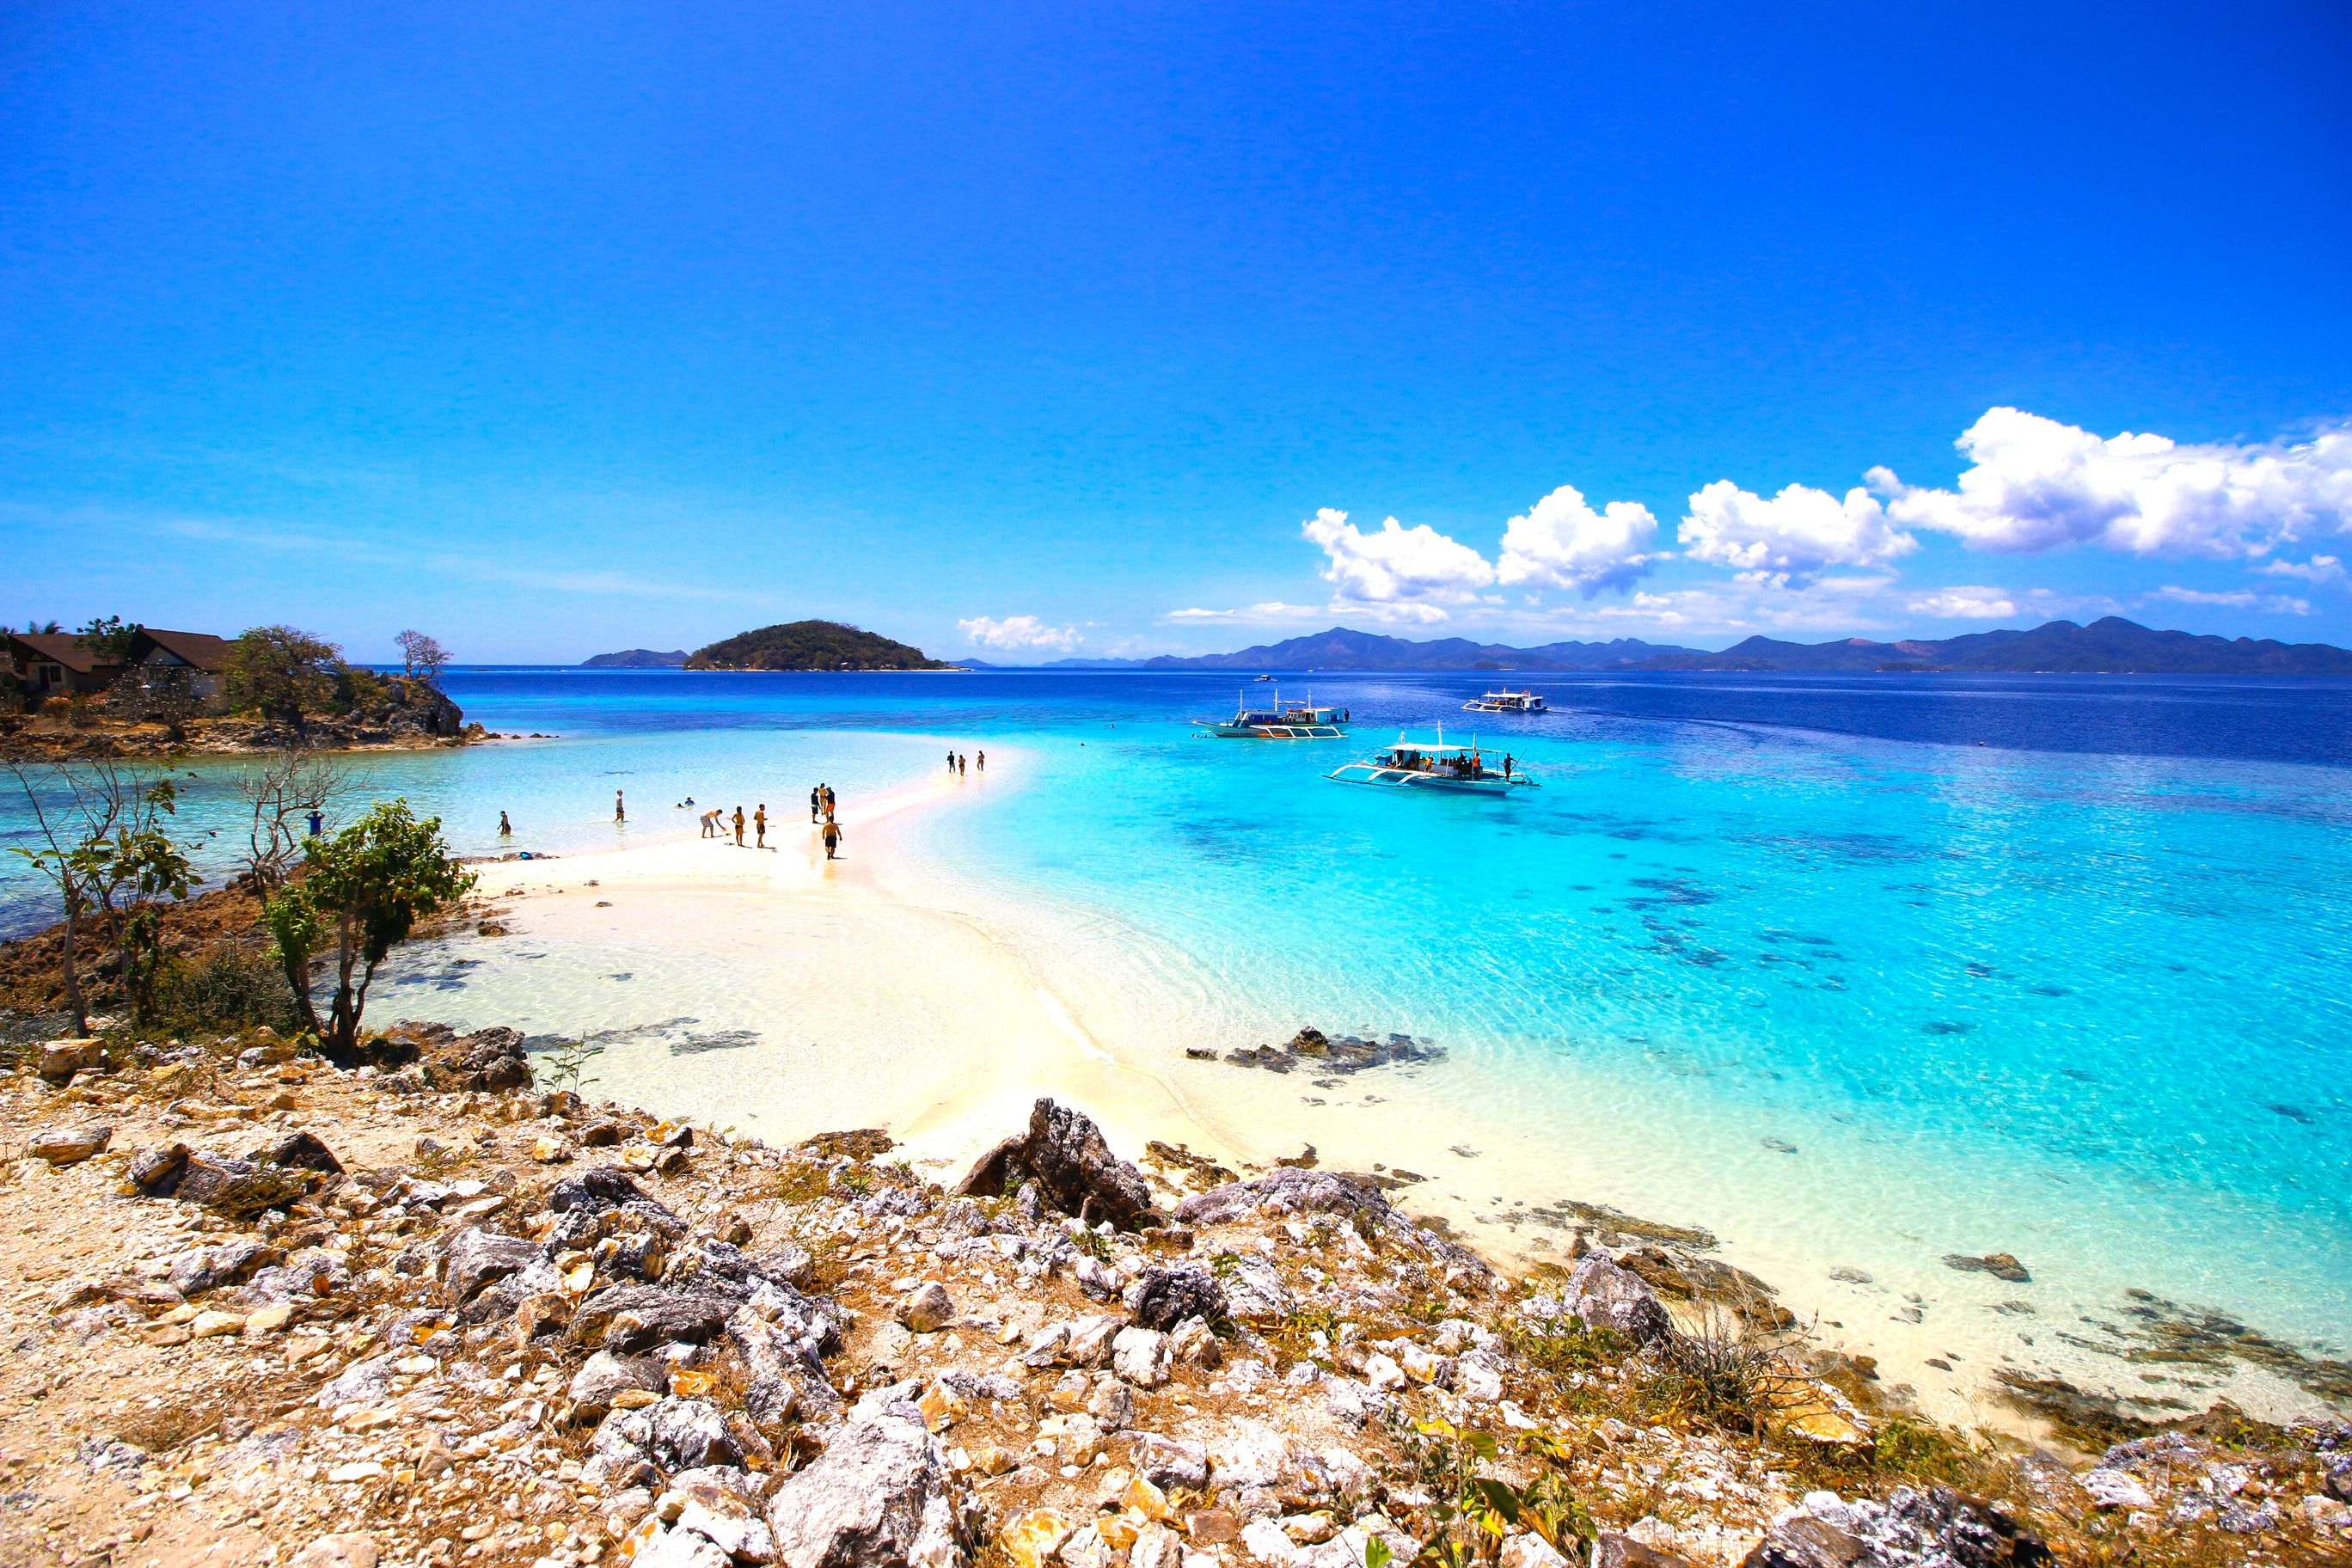 Patches of rocks overlooking a white sand beach surrounded by crystal clear waters with several boats in anchor in Coron, one of the most amazing places to visit in the Philippines